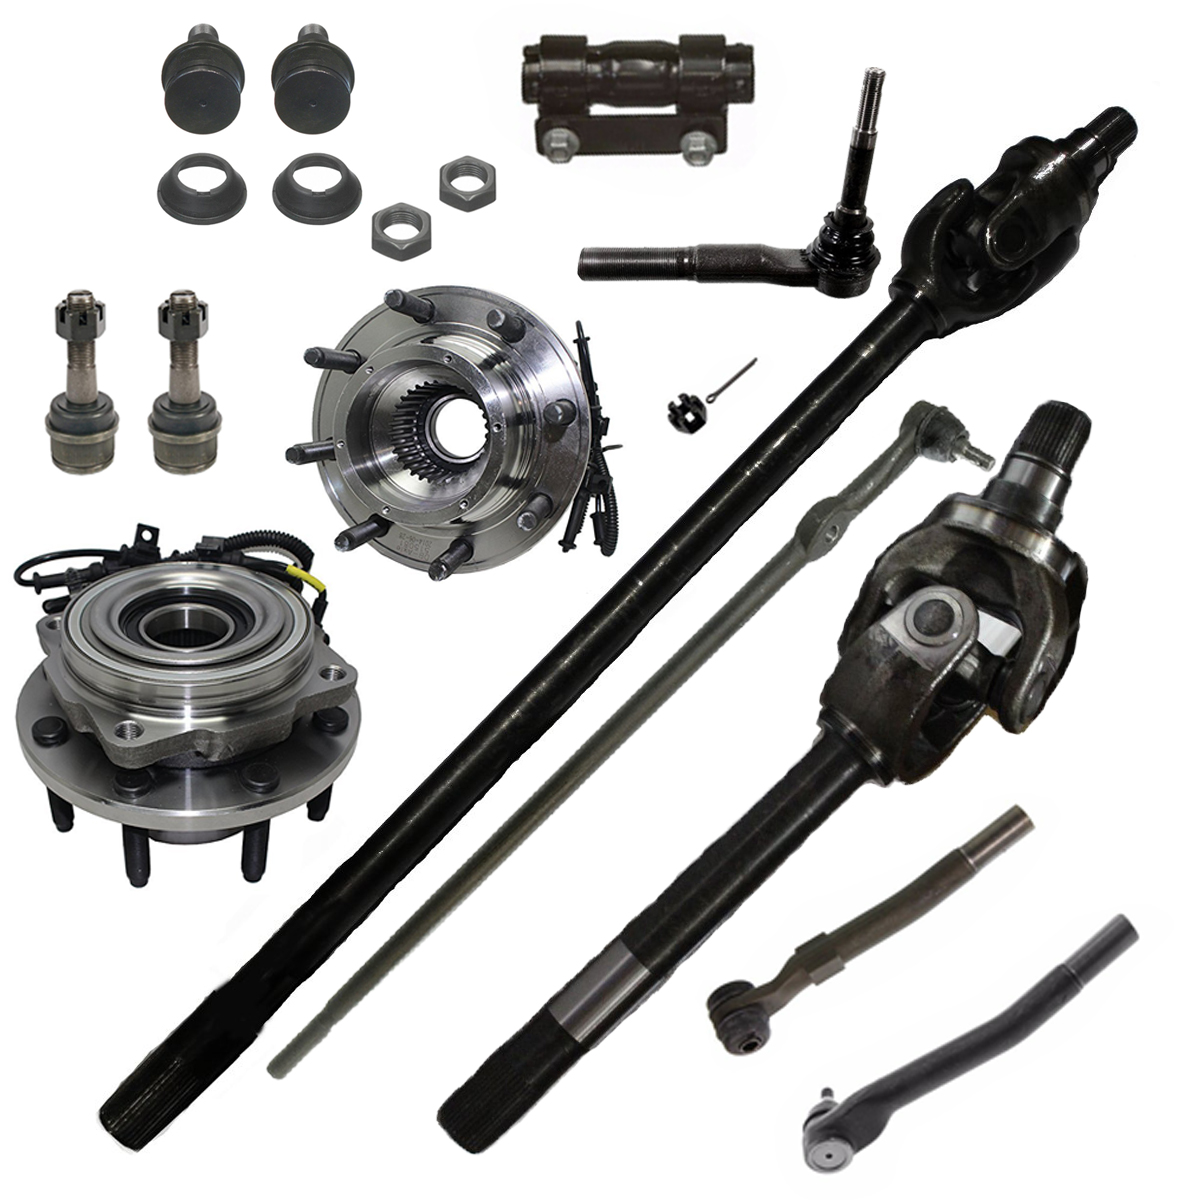 13pc Front CV Axle Shaft+Wheel Bearing Kit for Dana 60 Axle